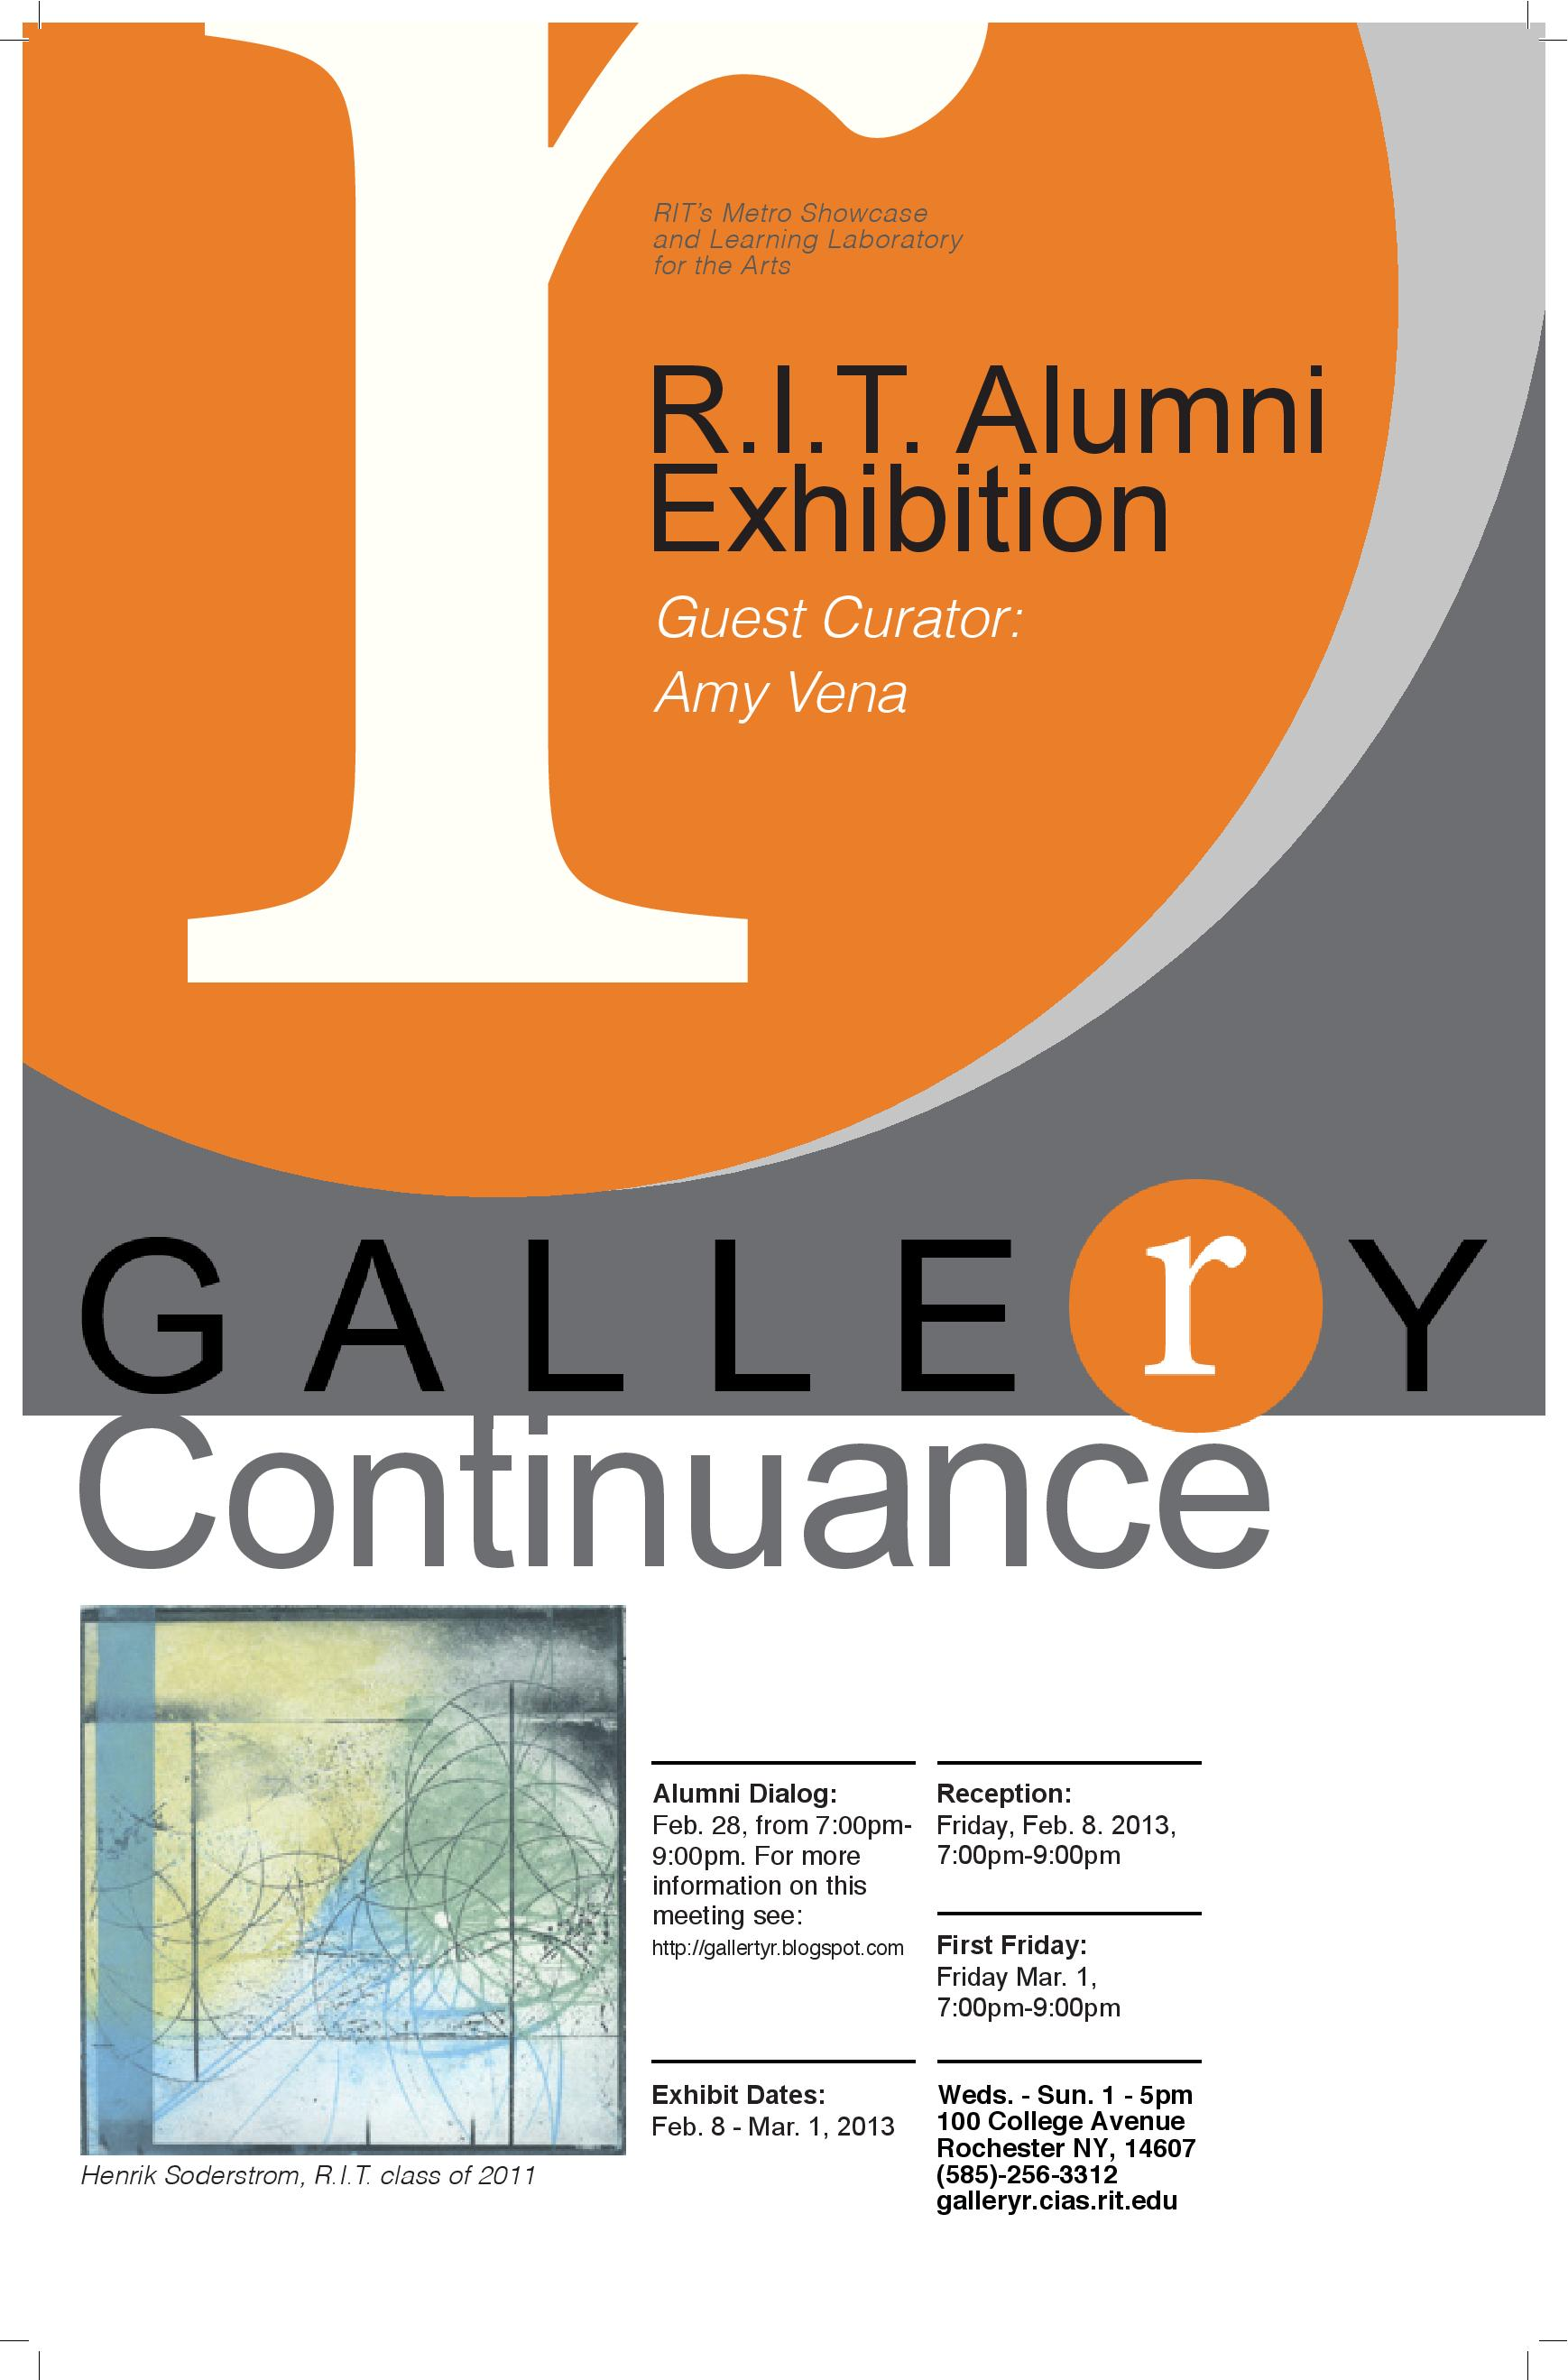 R.I.T. Alumni Exhibition: Continuance – Gallery r on